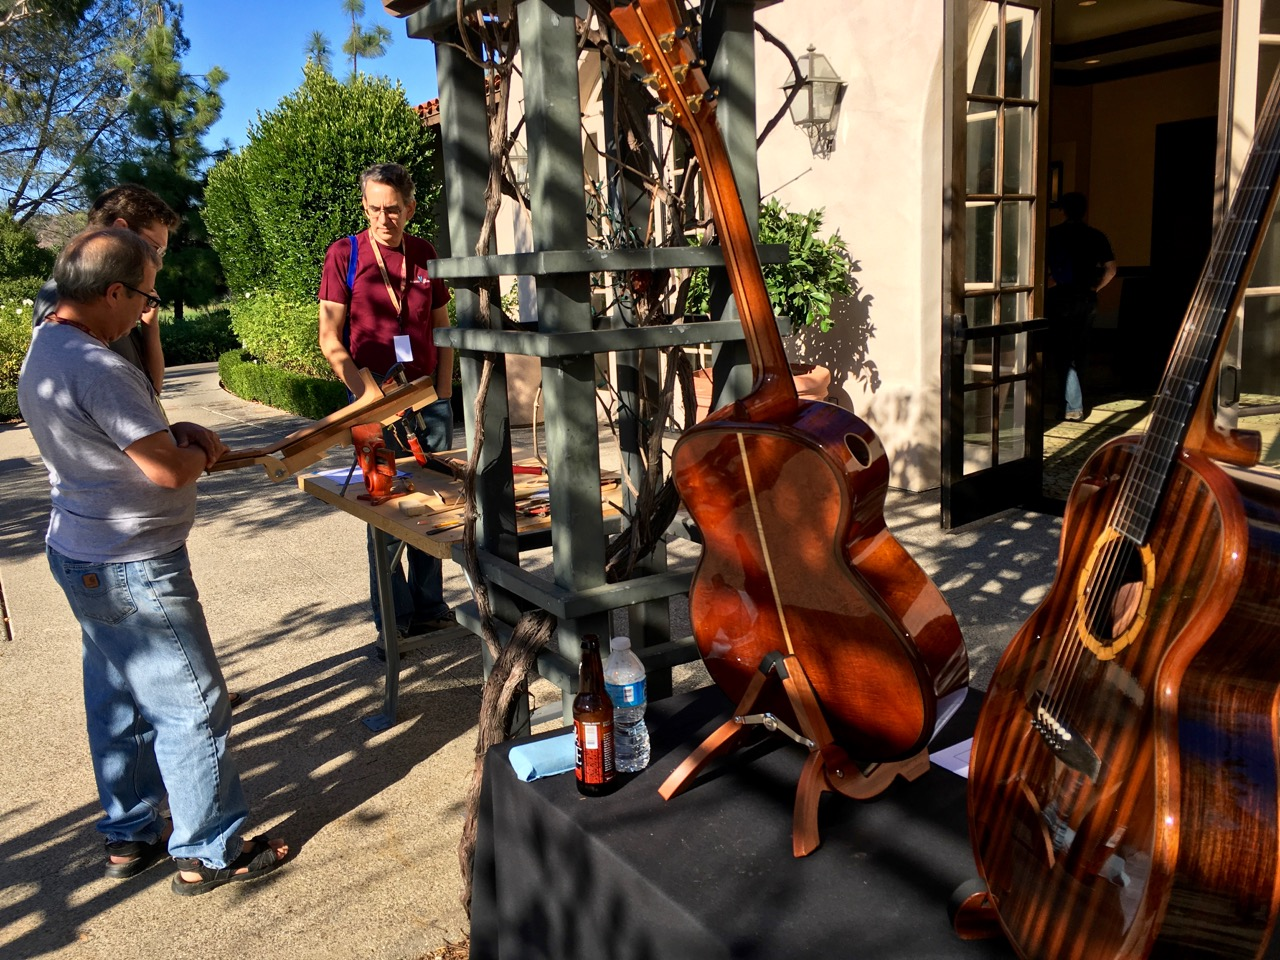 Handmade guitars outside with man demonstrating construction at Fretboard Summit